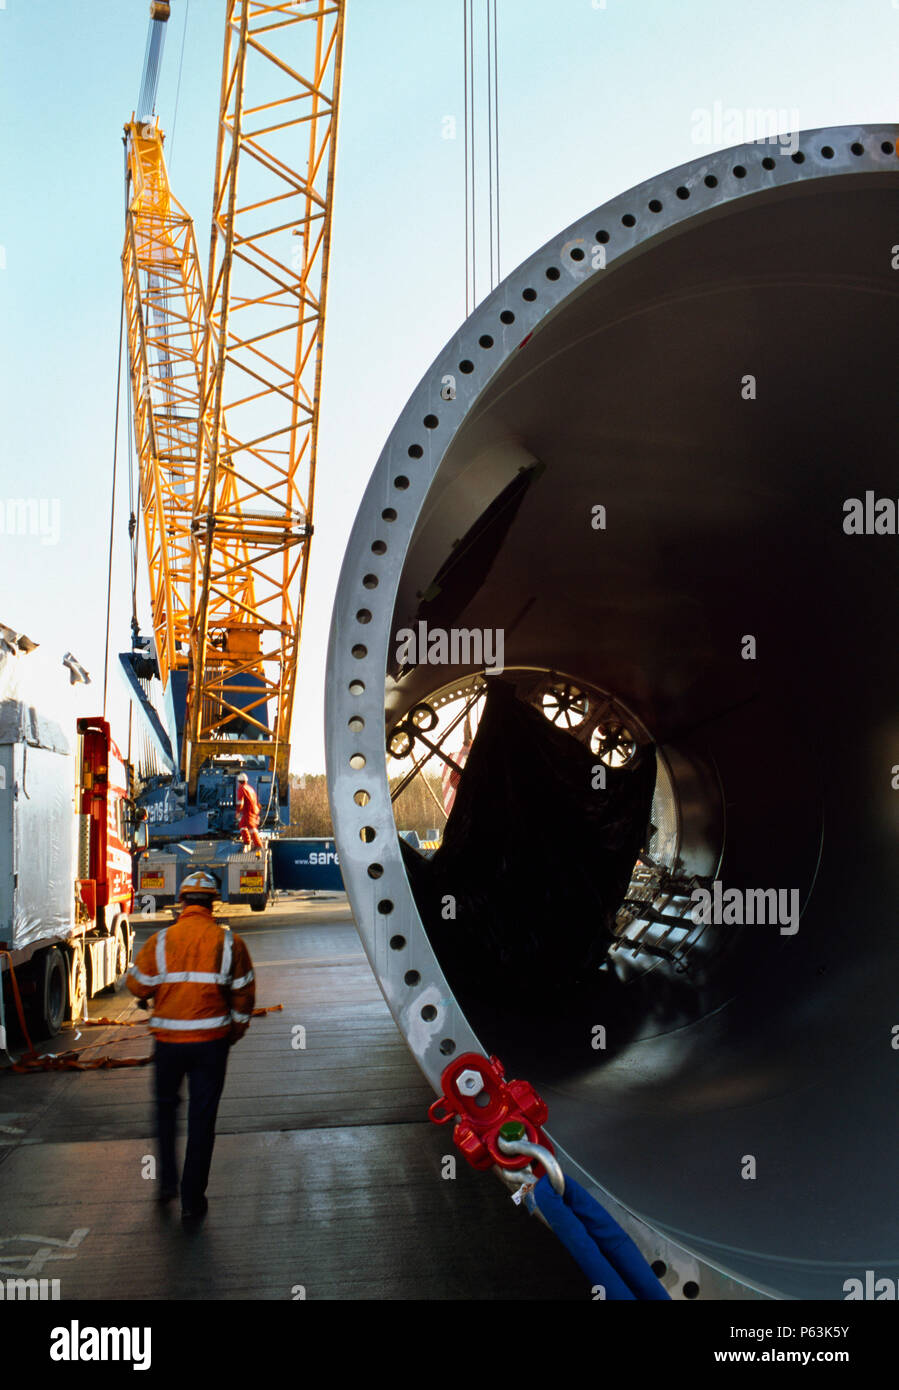 Workers unload huge sections of tubing that forms the body of a giant Enercon wind turbine. Worksop United Kingdom. December 2008. Stock Photo